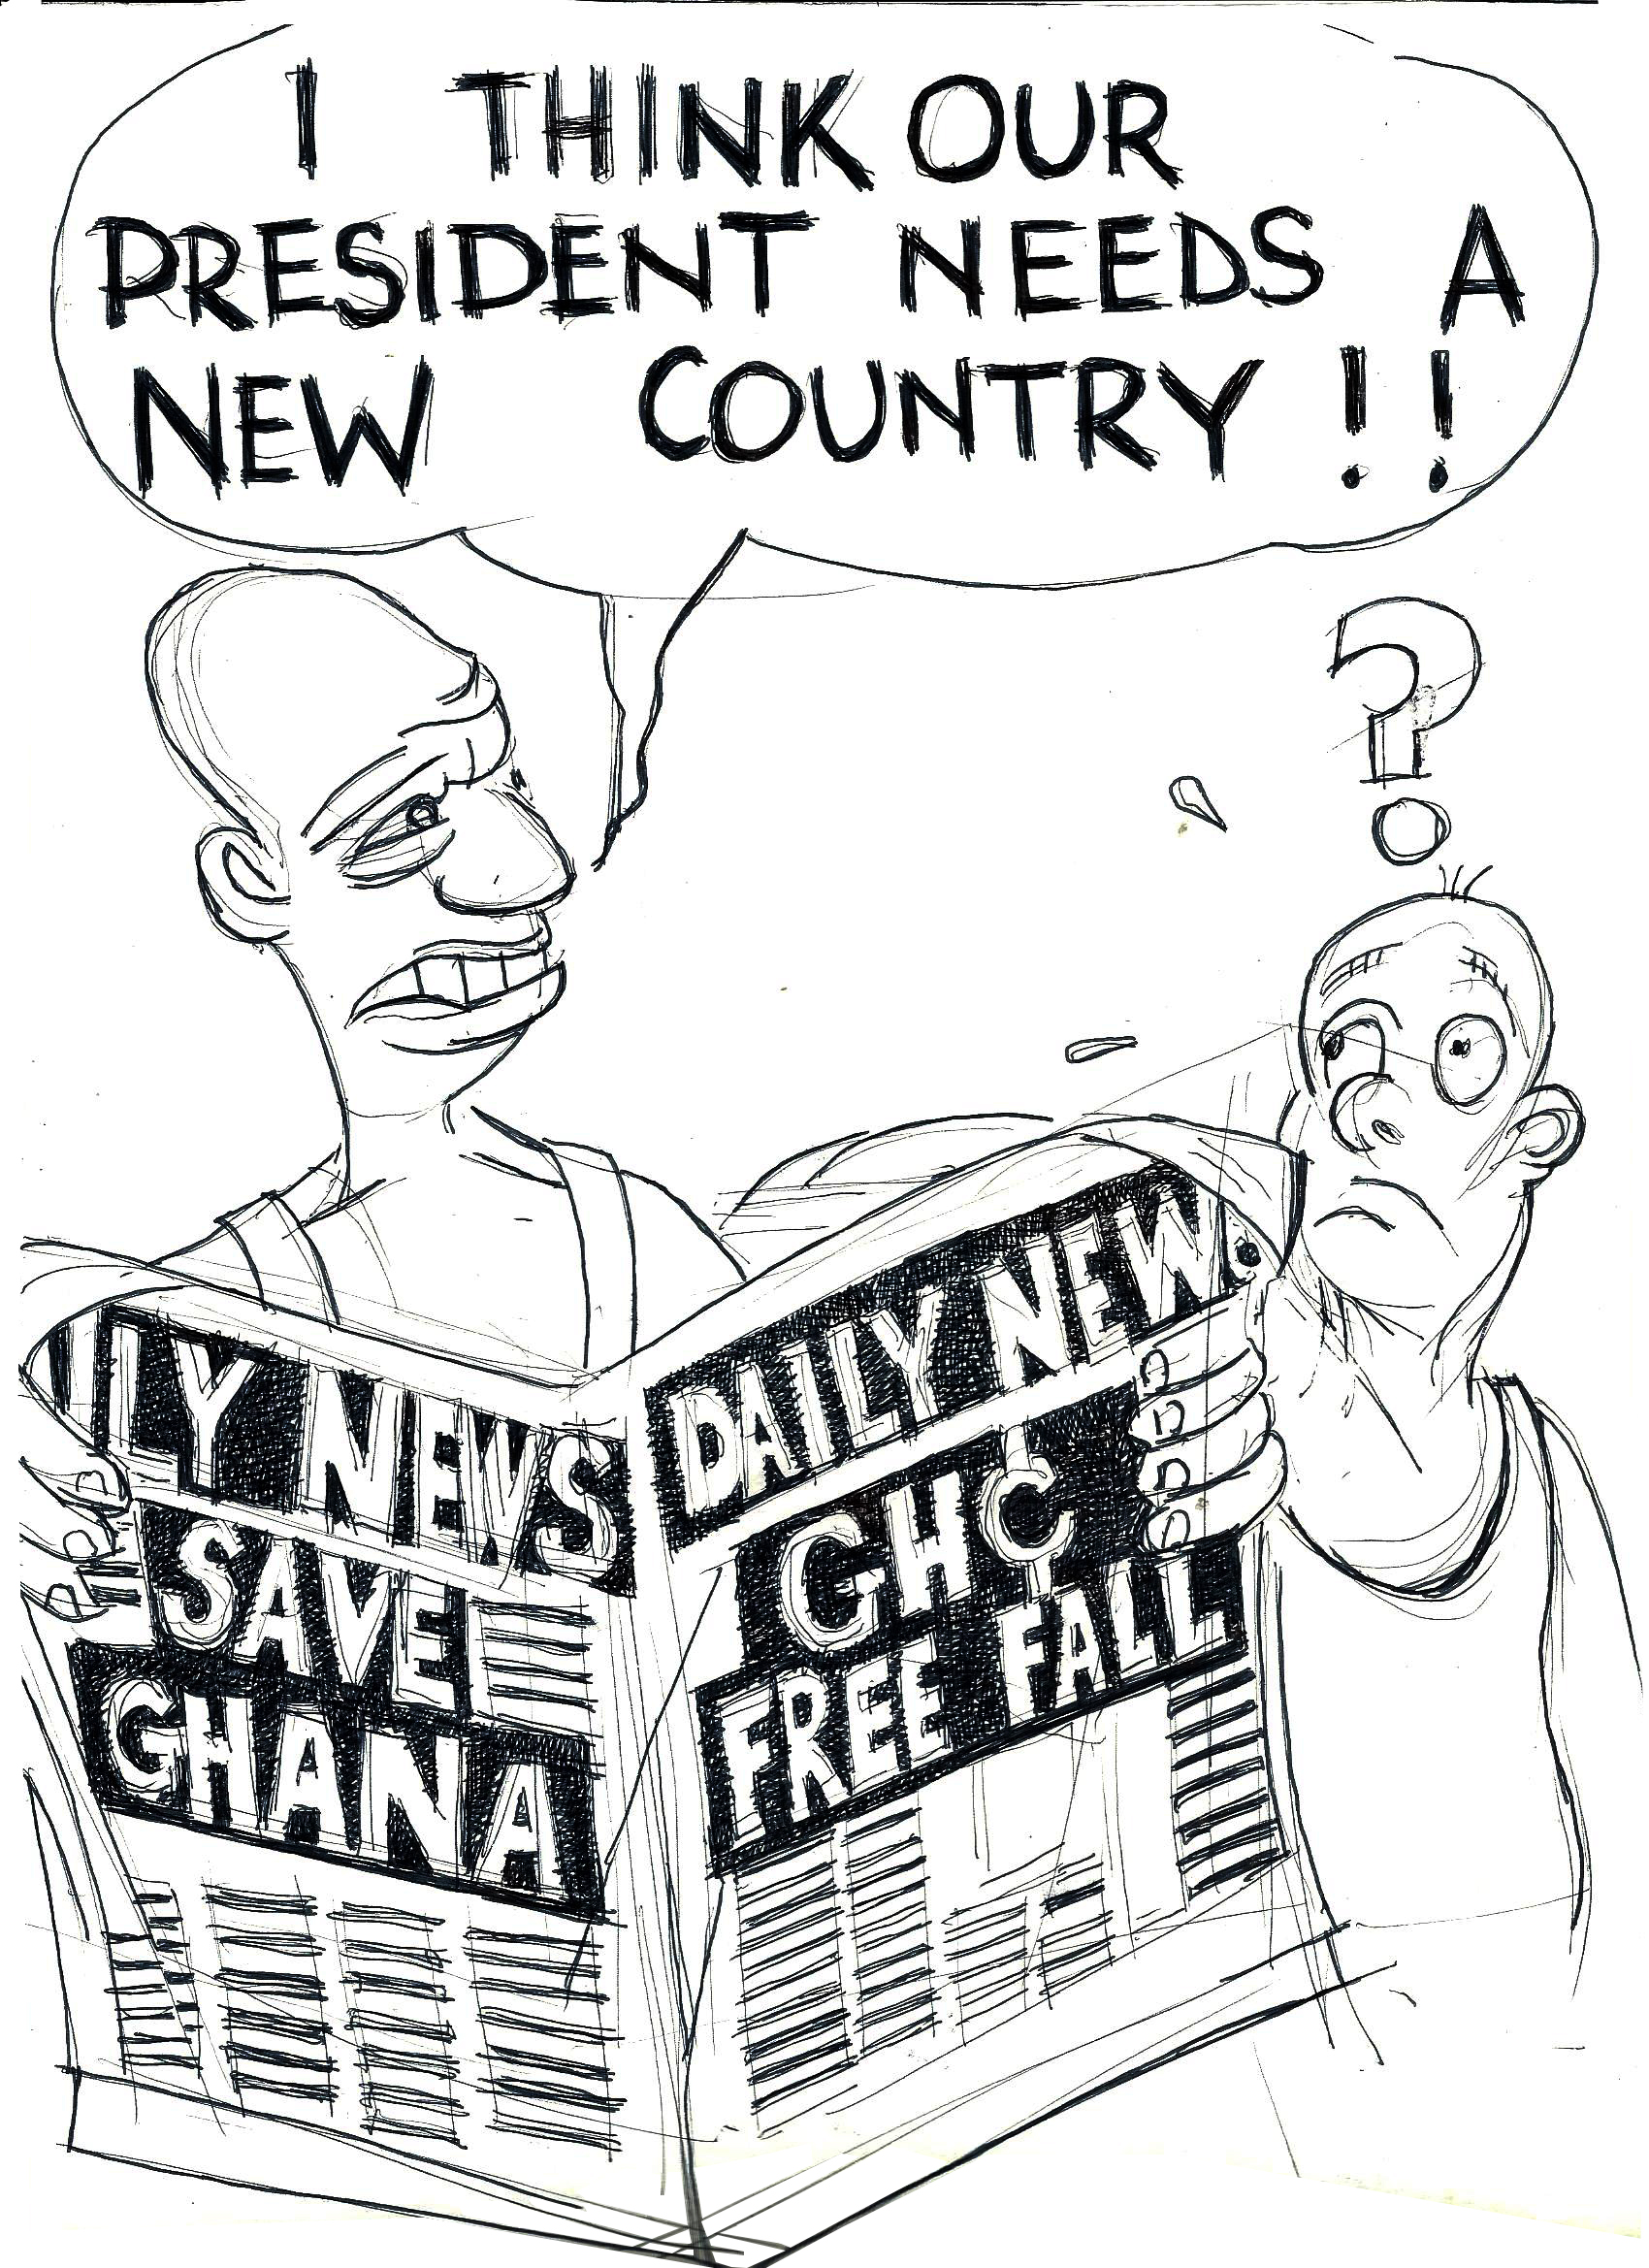 Kofi Wahala Thinks...